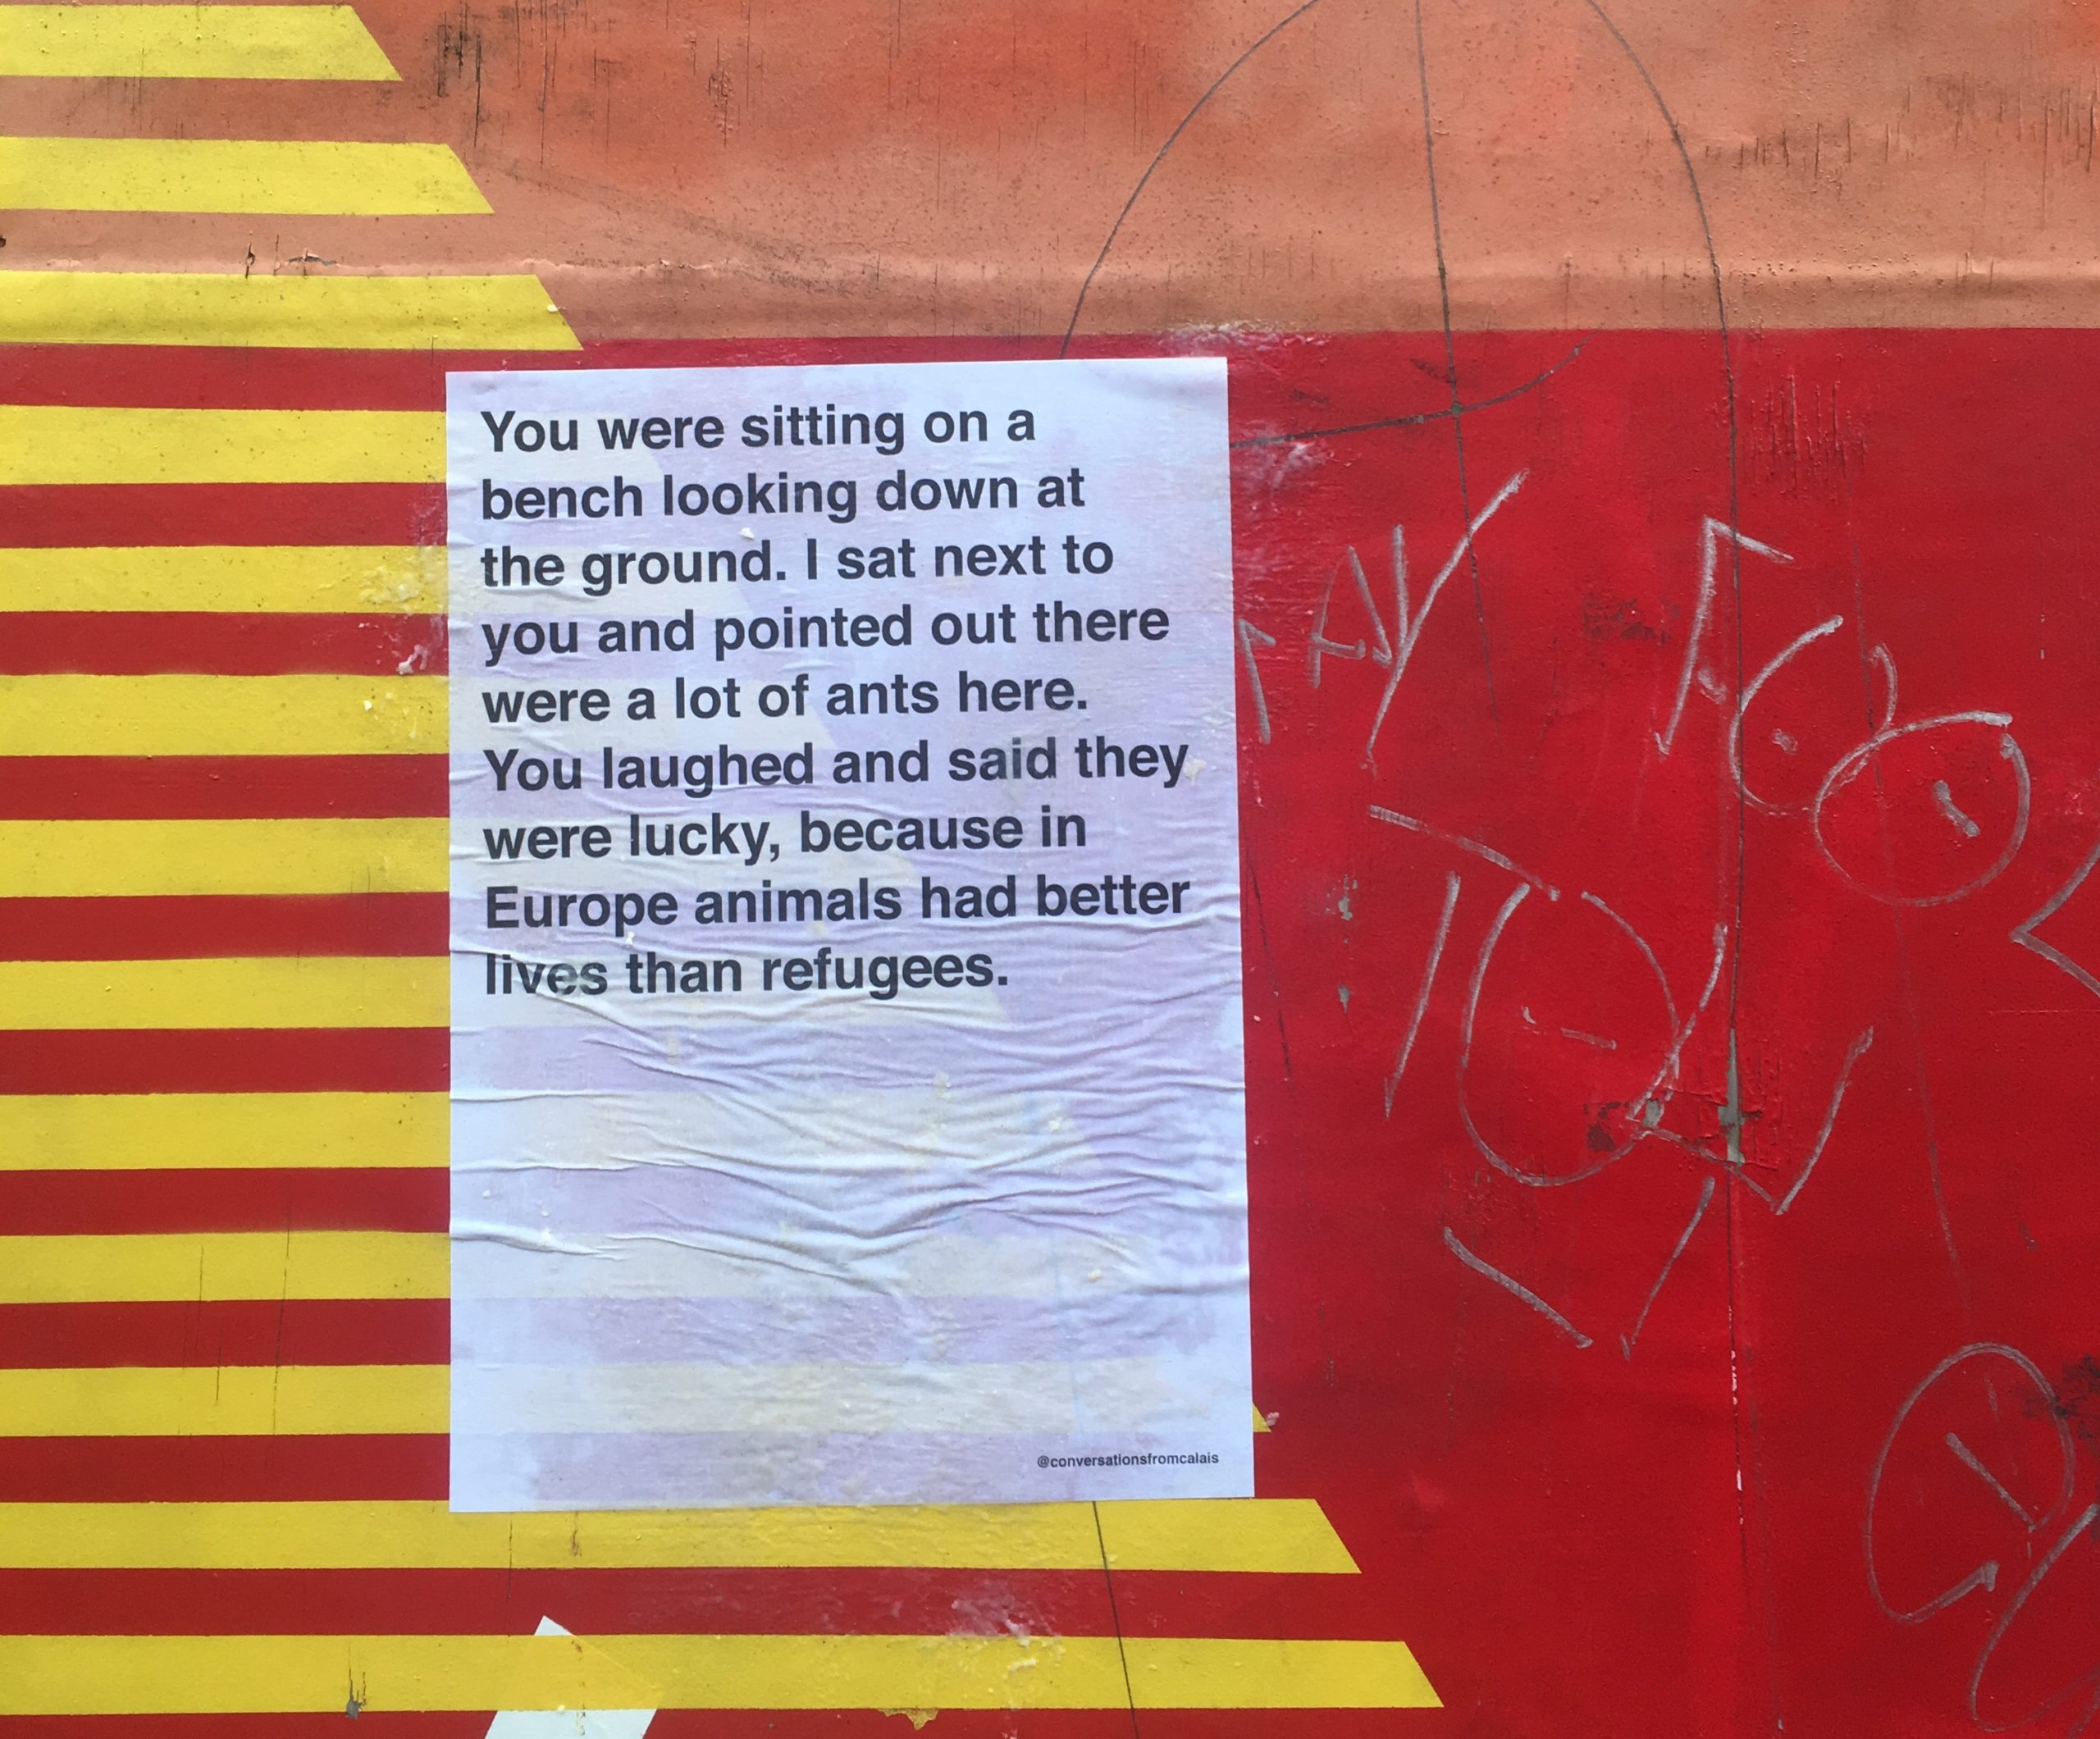 Conversations from Calais: The Poster Project Bringing Humanity Back Into the Refugee Crisis